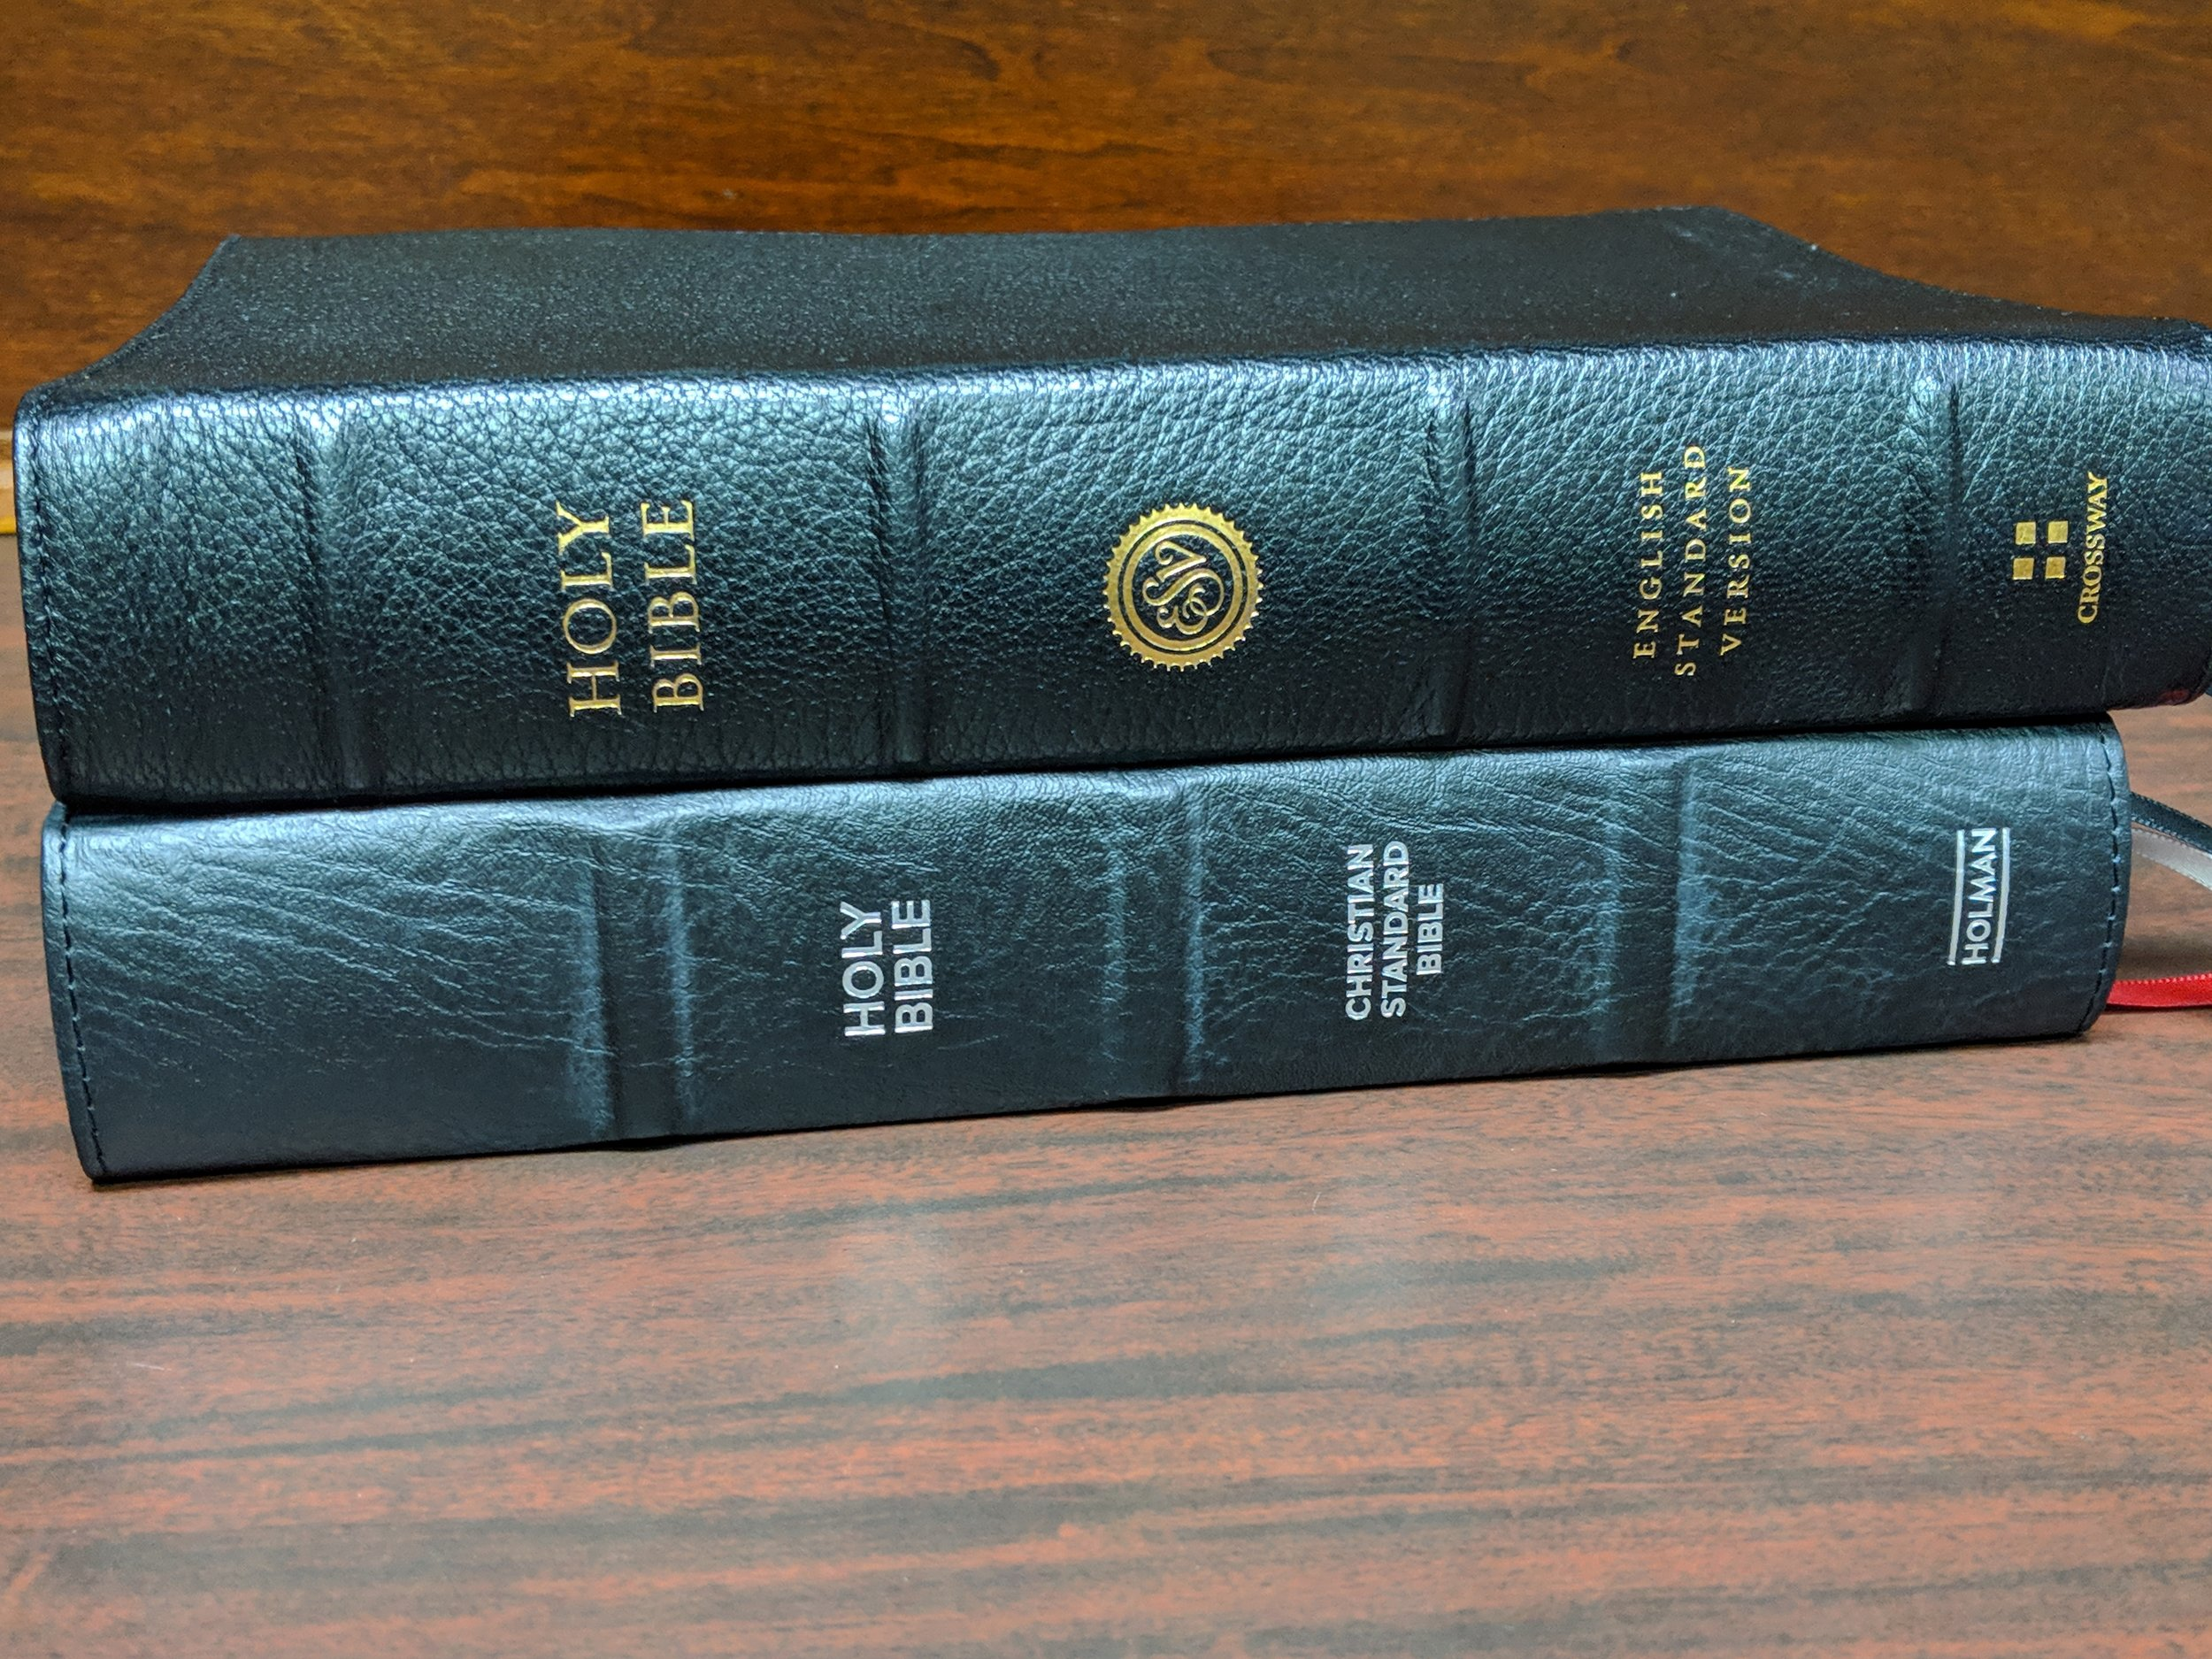 CSB Pastor's Bible on bottom ESV Preaching Bible on top